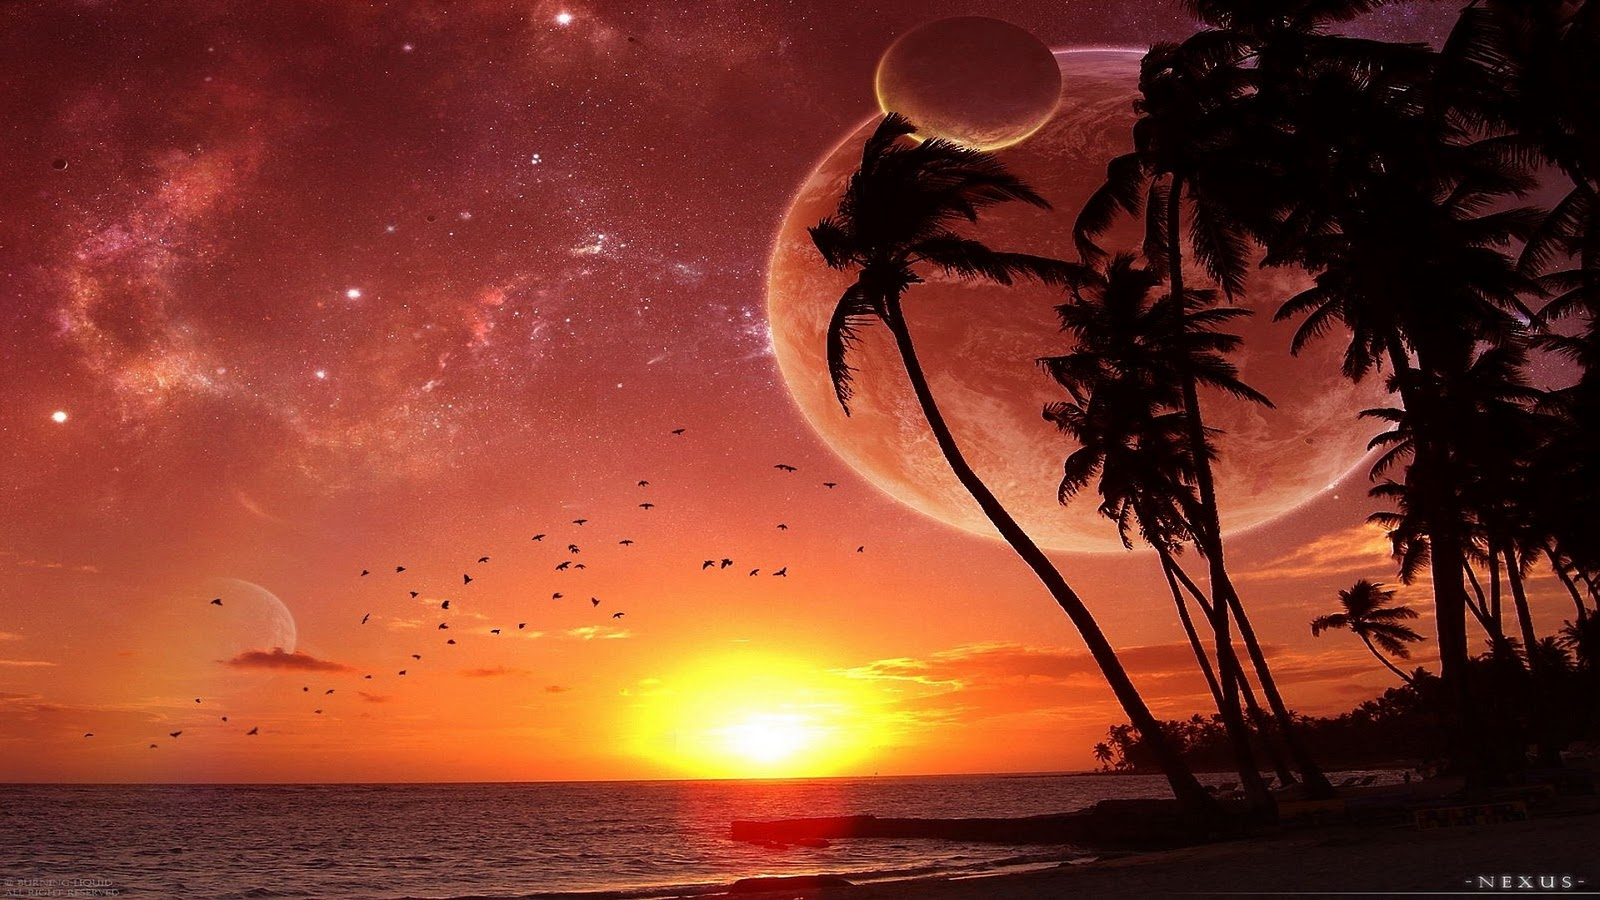 WallpapersKu: Beautifull Sunset Wallpapers